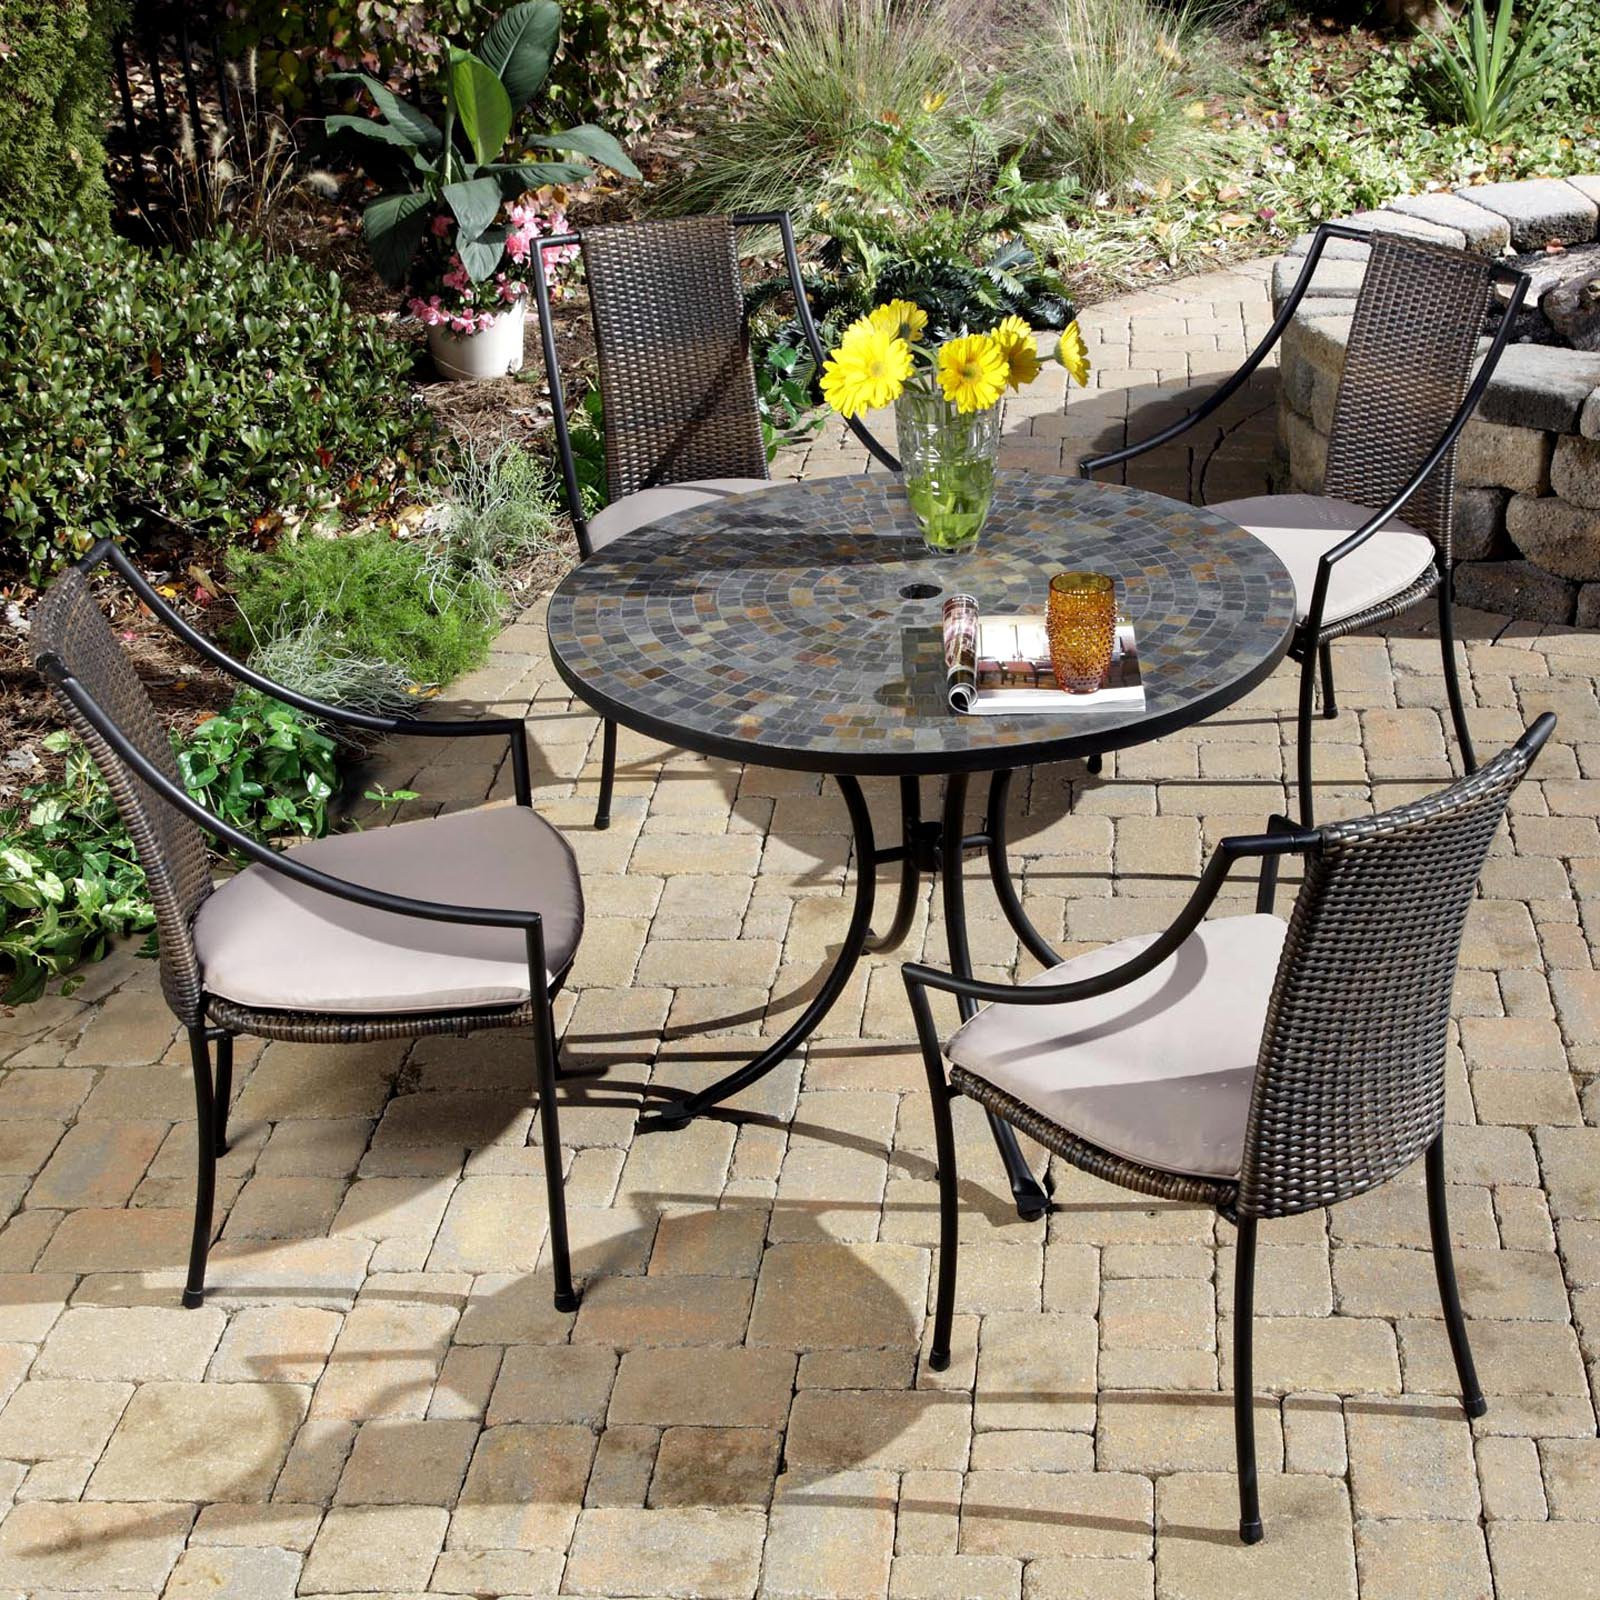 Best ideas about Patio Dining Set . Save or Pin Home Styles Stone Harbor Mosaic Outdoor Dining Set Patio Now.